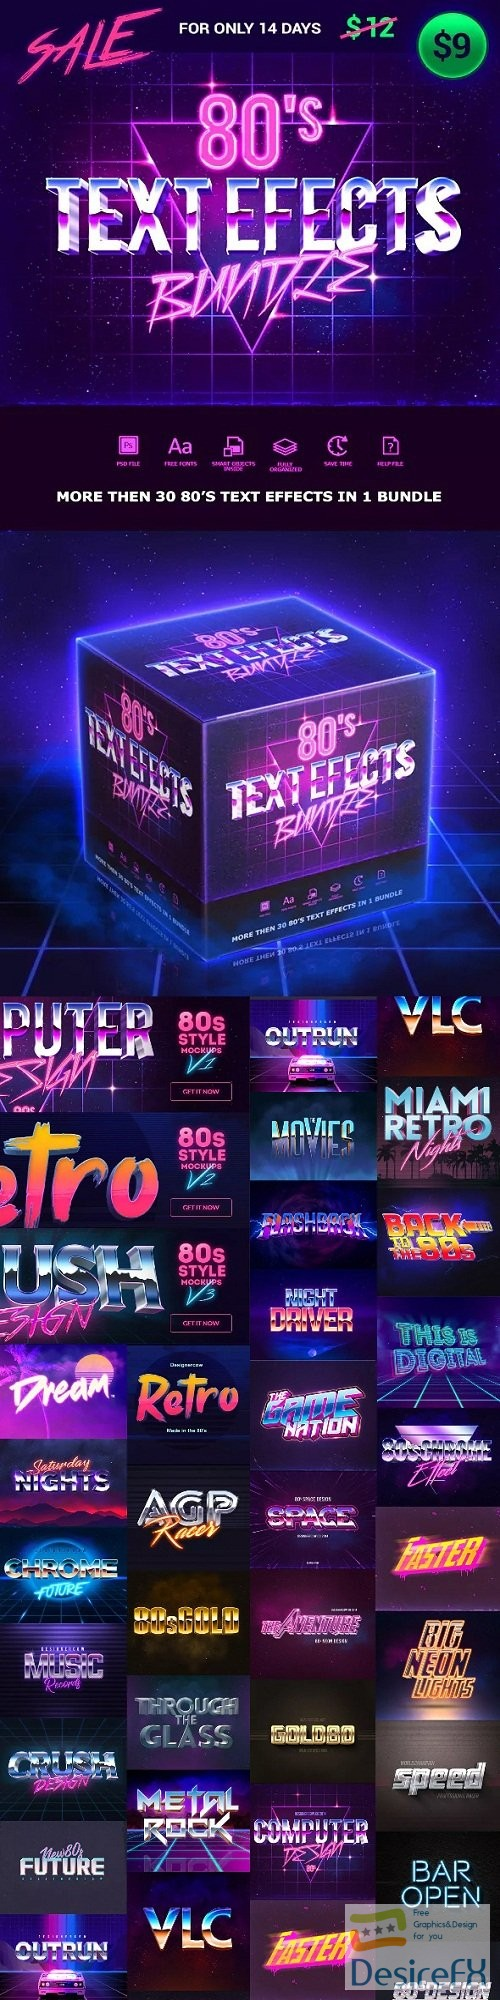 layered-psd - 80s Text Effects Bundle - 23228725